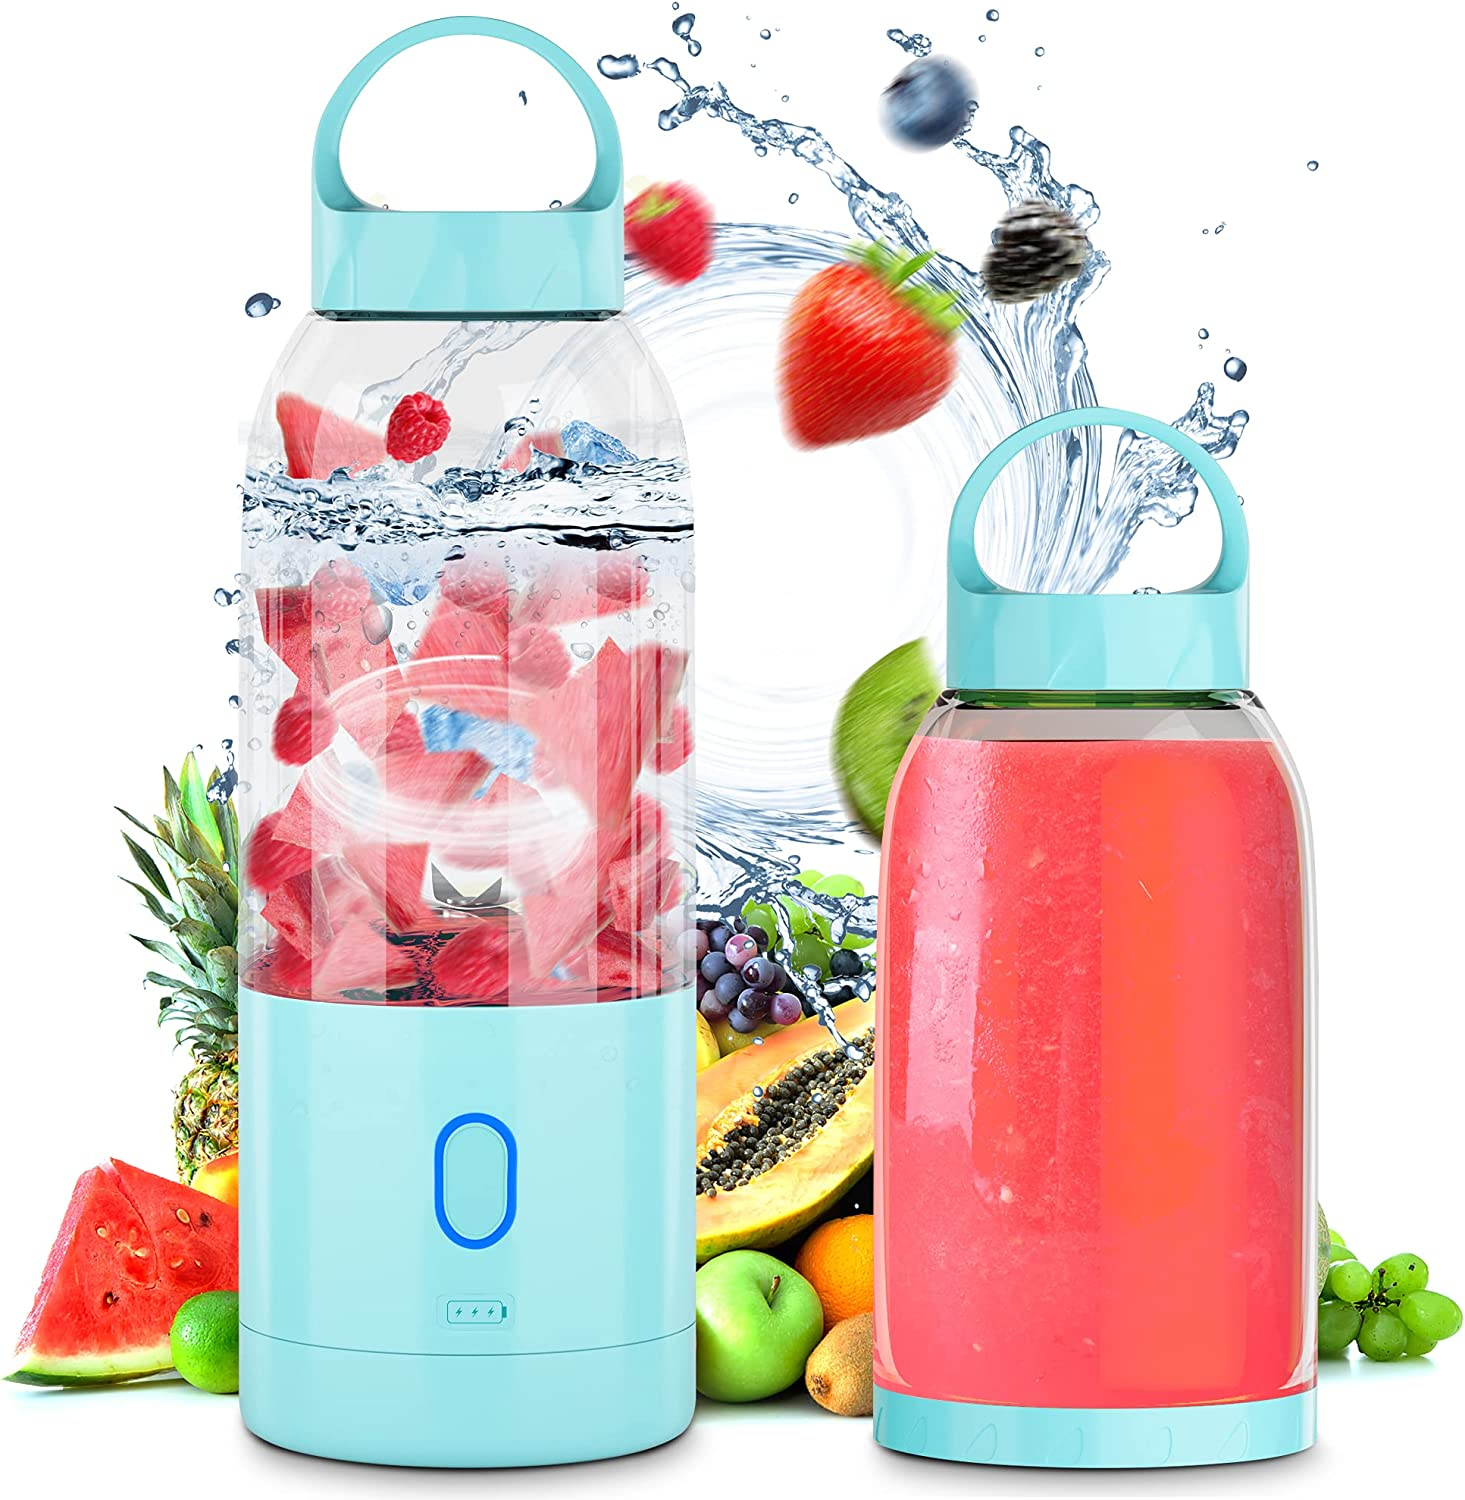 Portable Blender Electric, Likorlove Juicer Mixer Fruit Rechargeable Personal Size USB Home Jucie Blender Bottles 16.9 OZ for Shakes and Smoothie with Six Blades for Sports Travel Outdoors Mixing